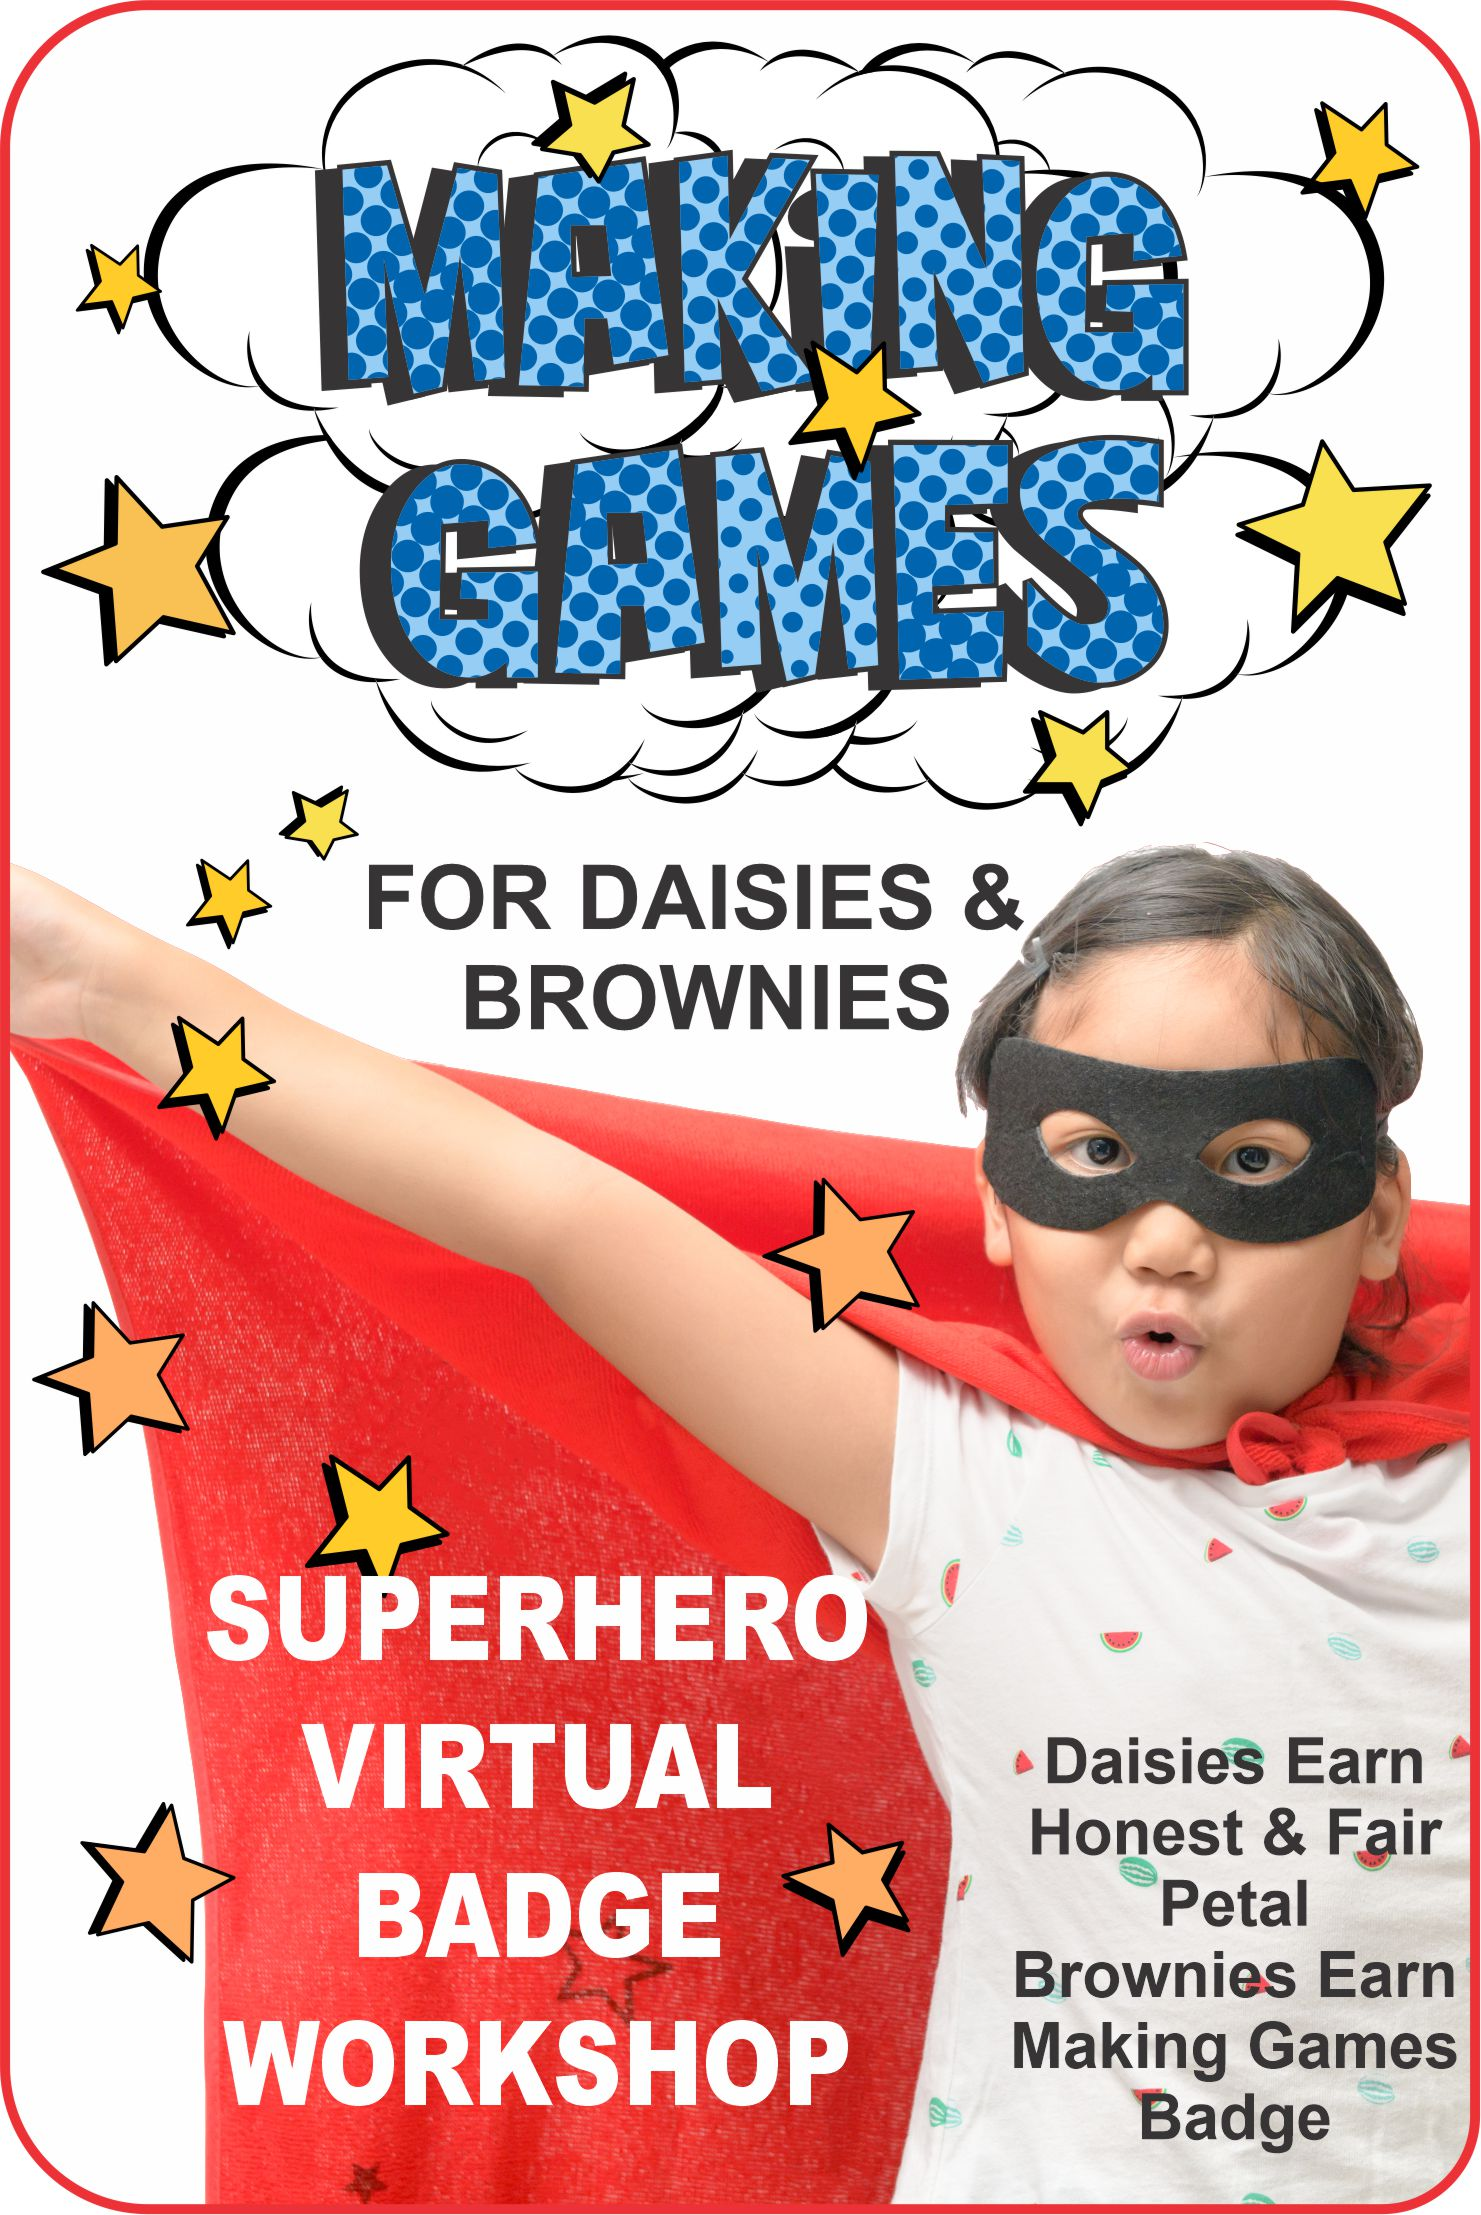 Join us for our 1-hour Making Games Superhero Virtual Workshop and learn about games and ways to make them different! #makingfriends #girlscouts #gsbadge #makinggames #girlscoutsonline #virtualclass #superheros via @gsleader411